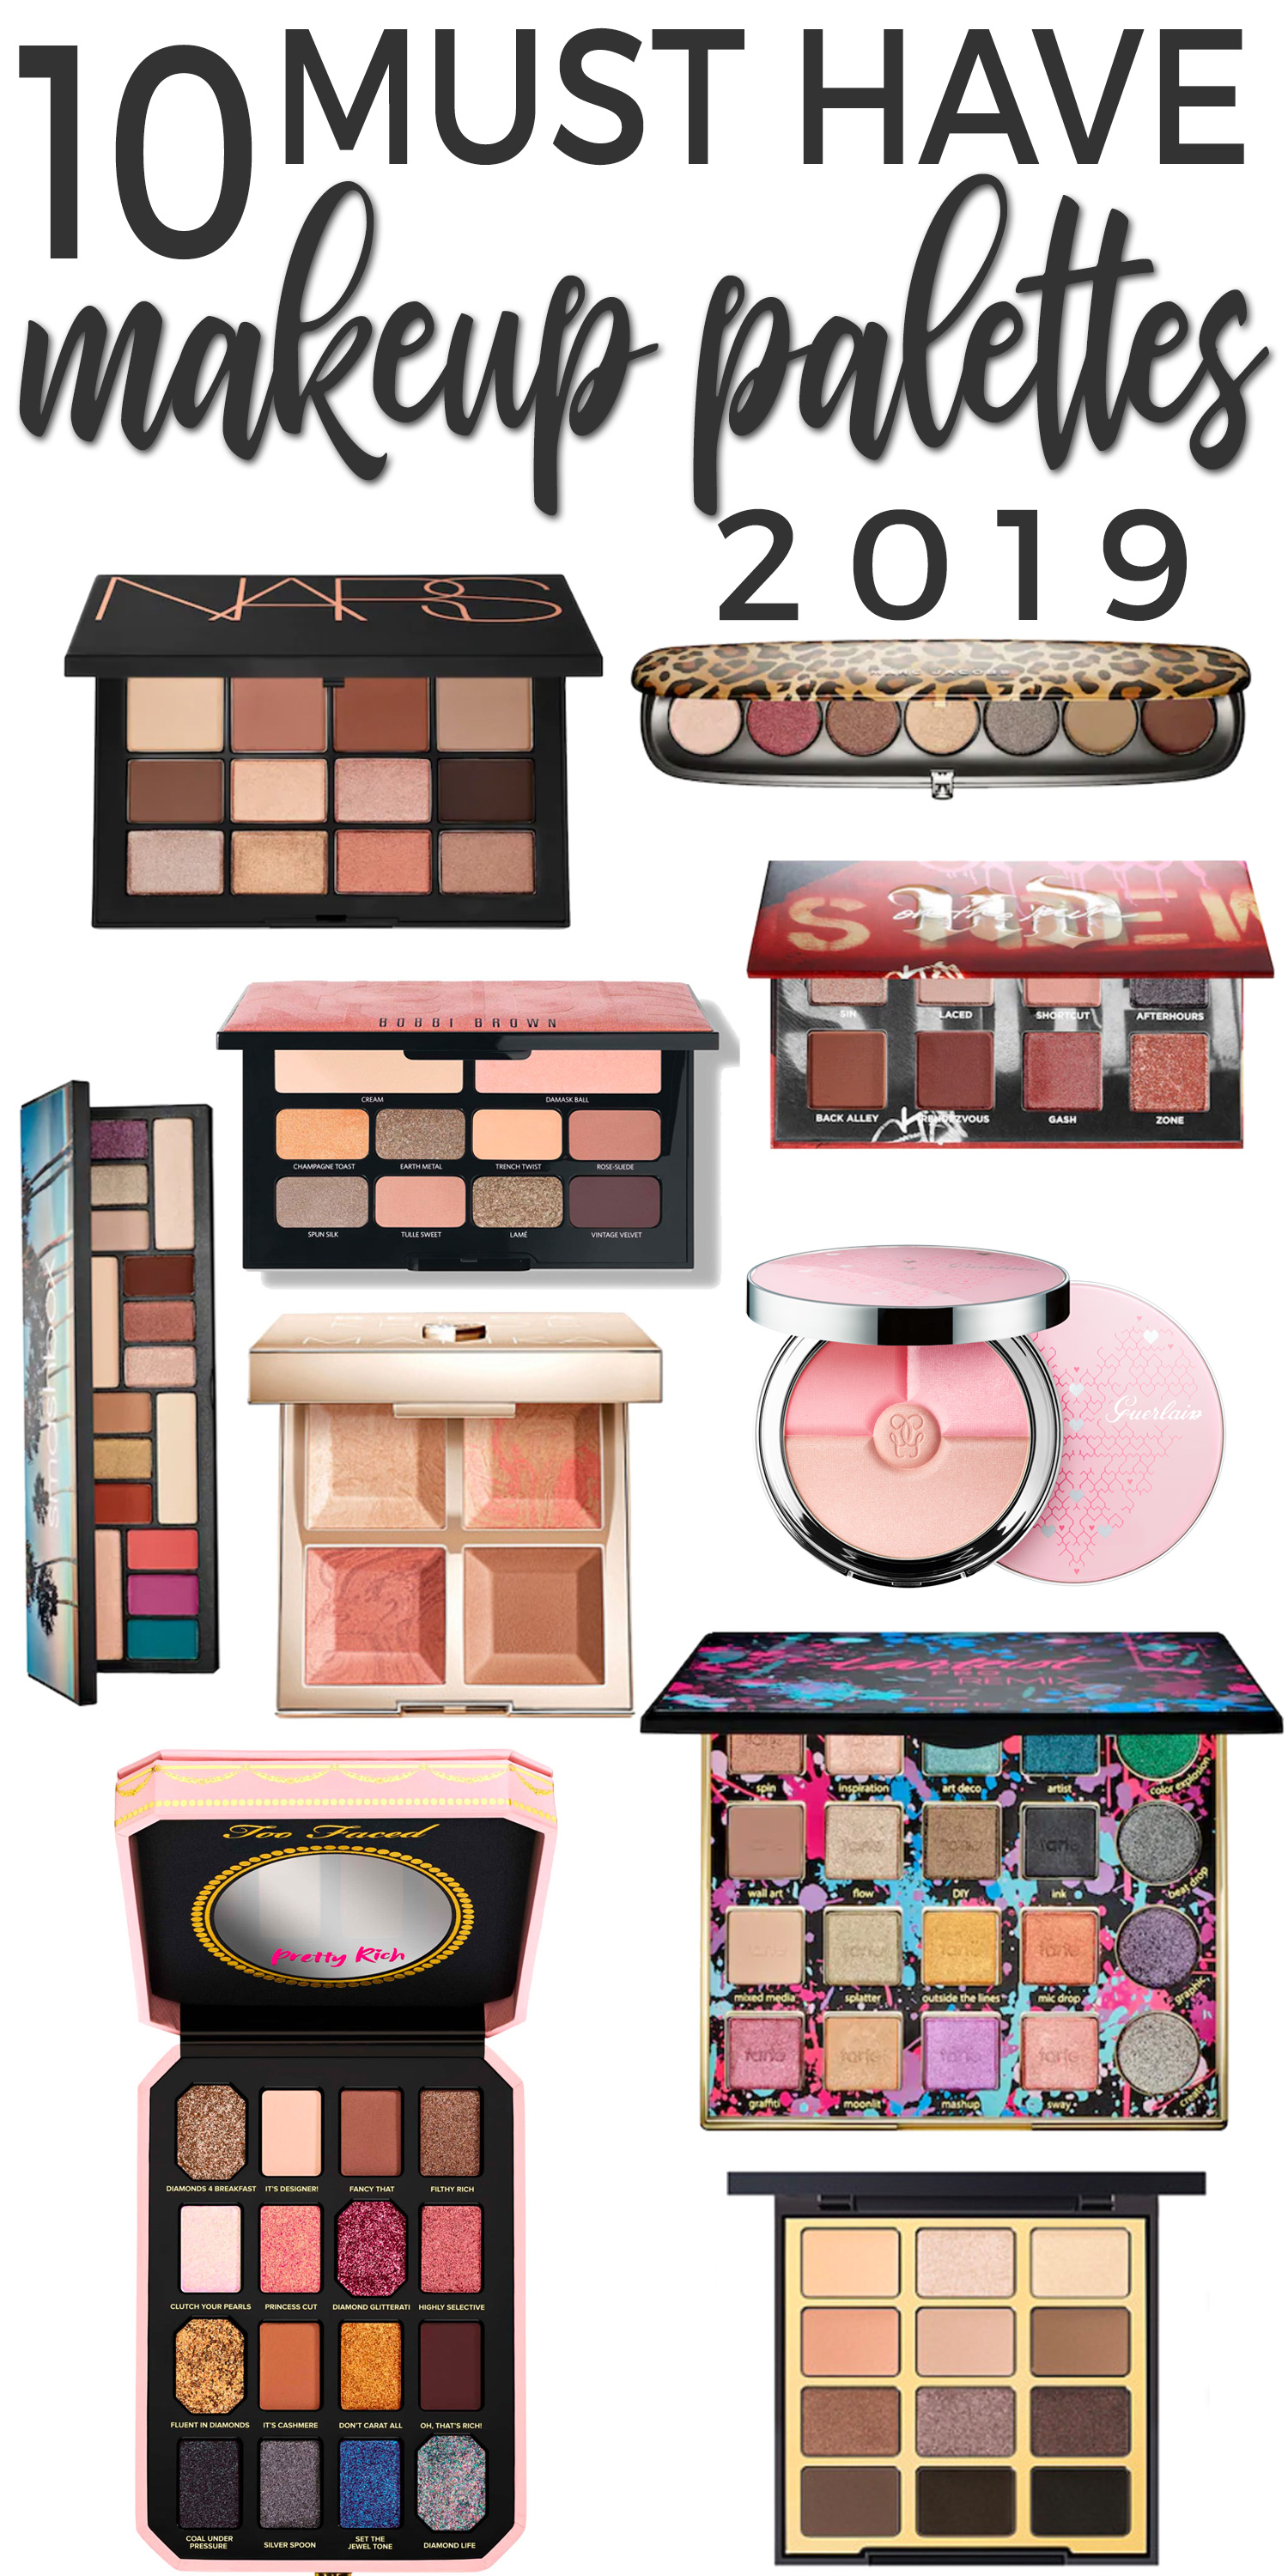 10 Must Have Makeup Palettes for 2019